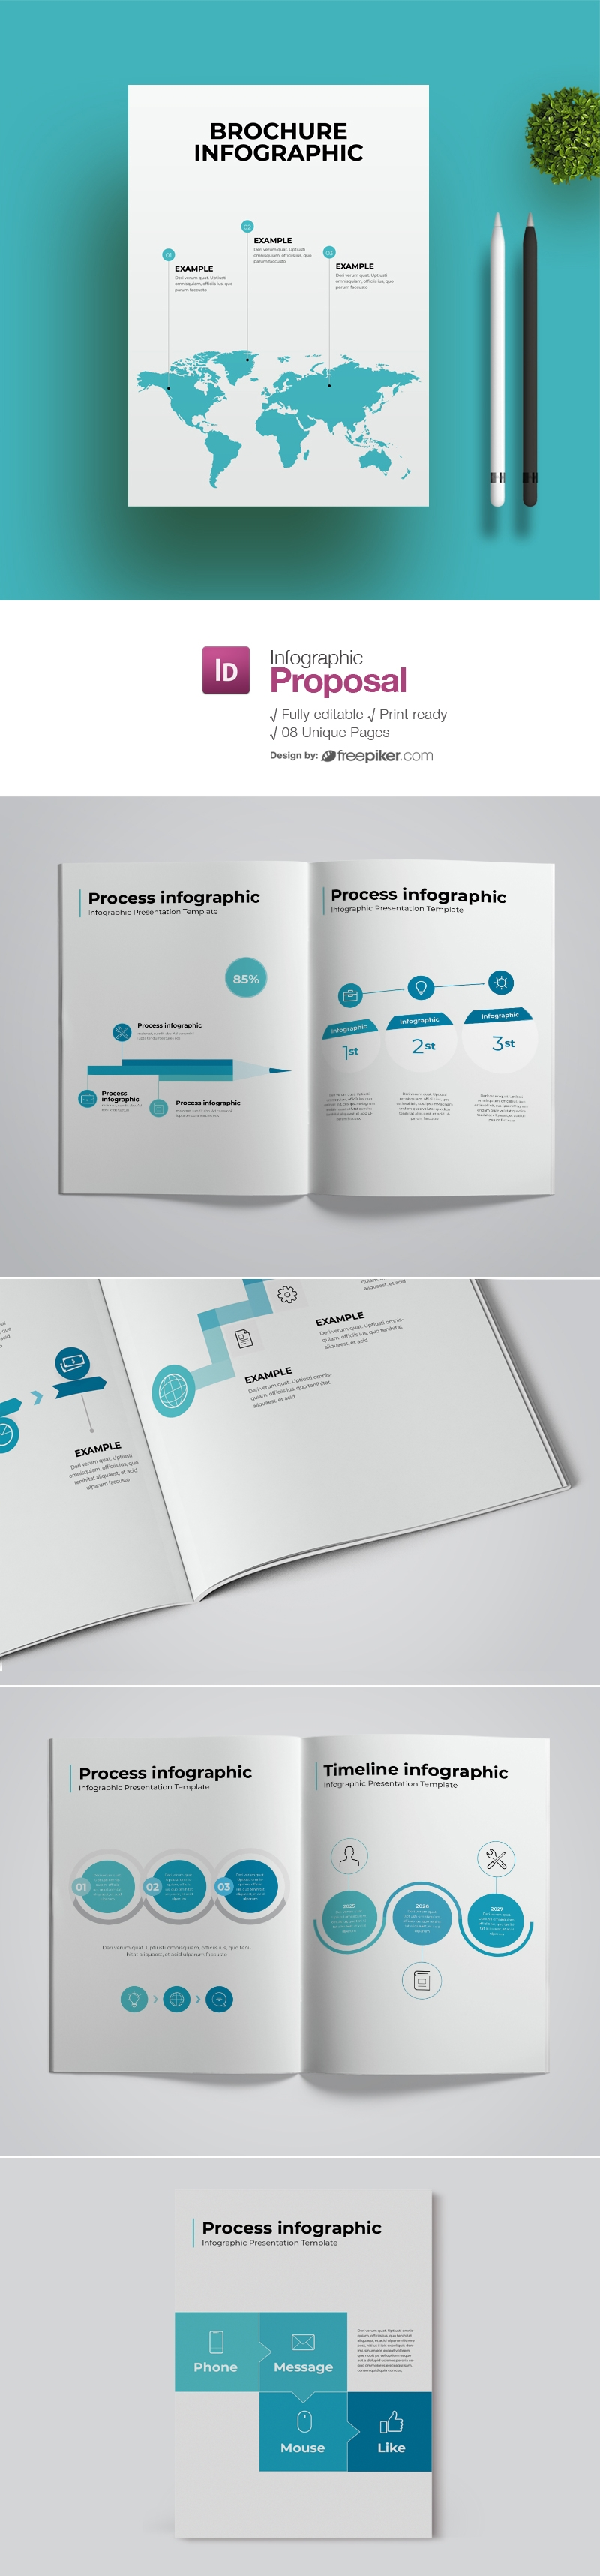 Infographic Project Proposal